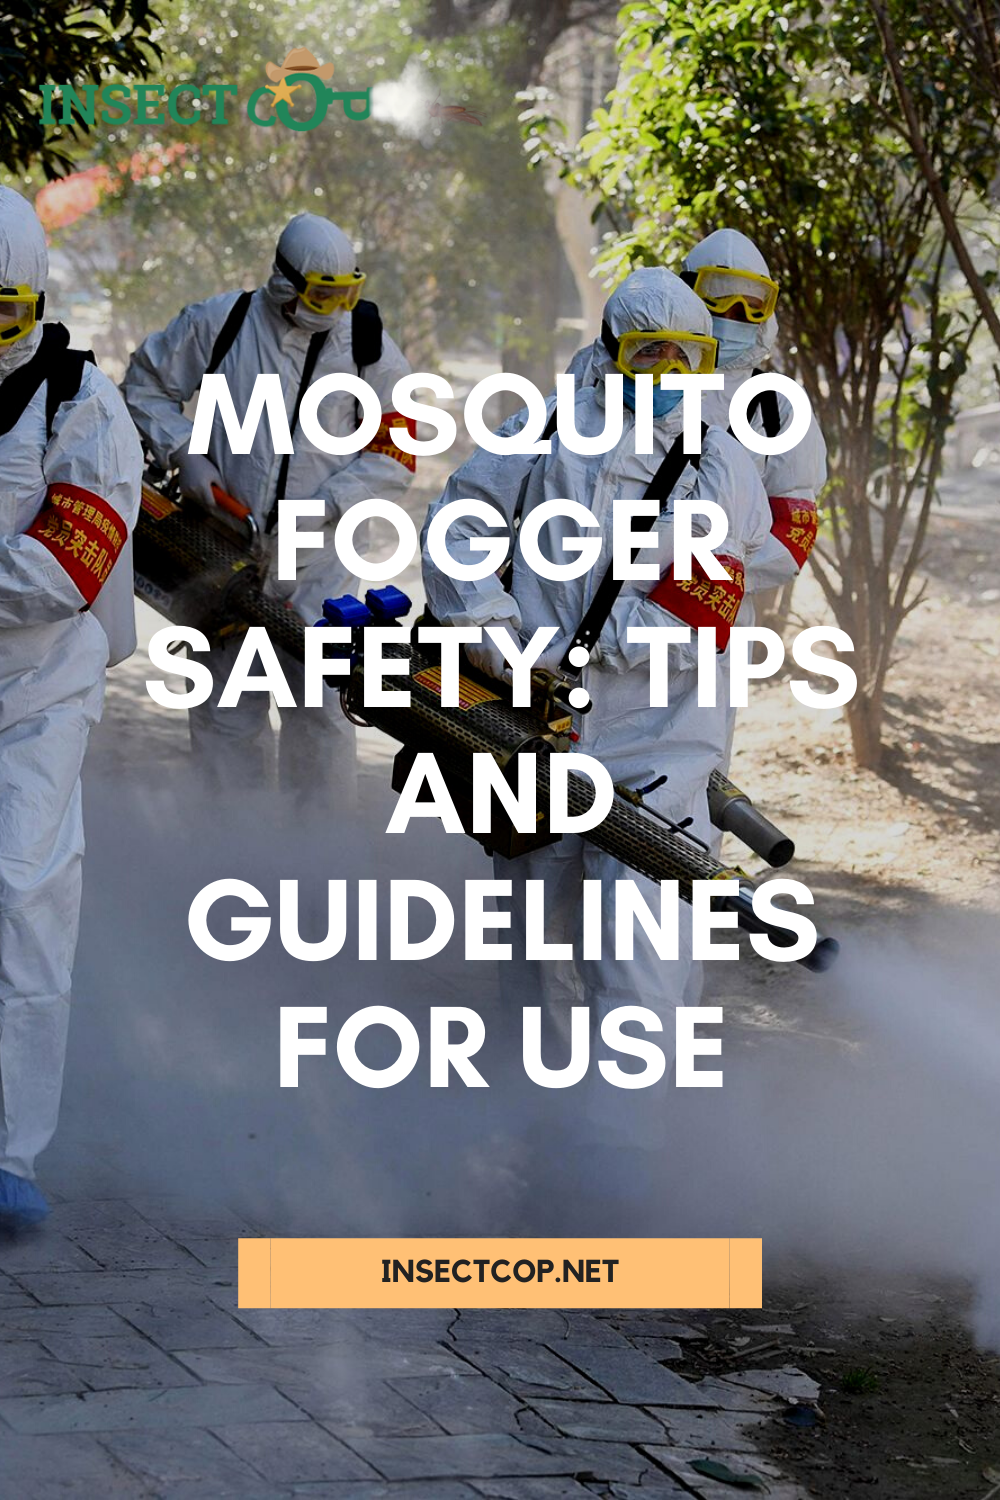 Pin on Other purposes of mosquito foggers